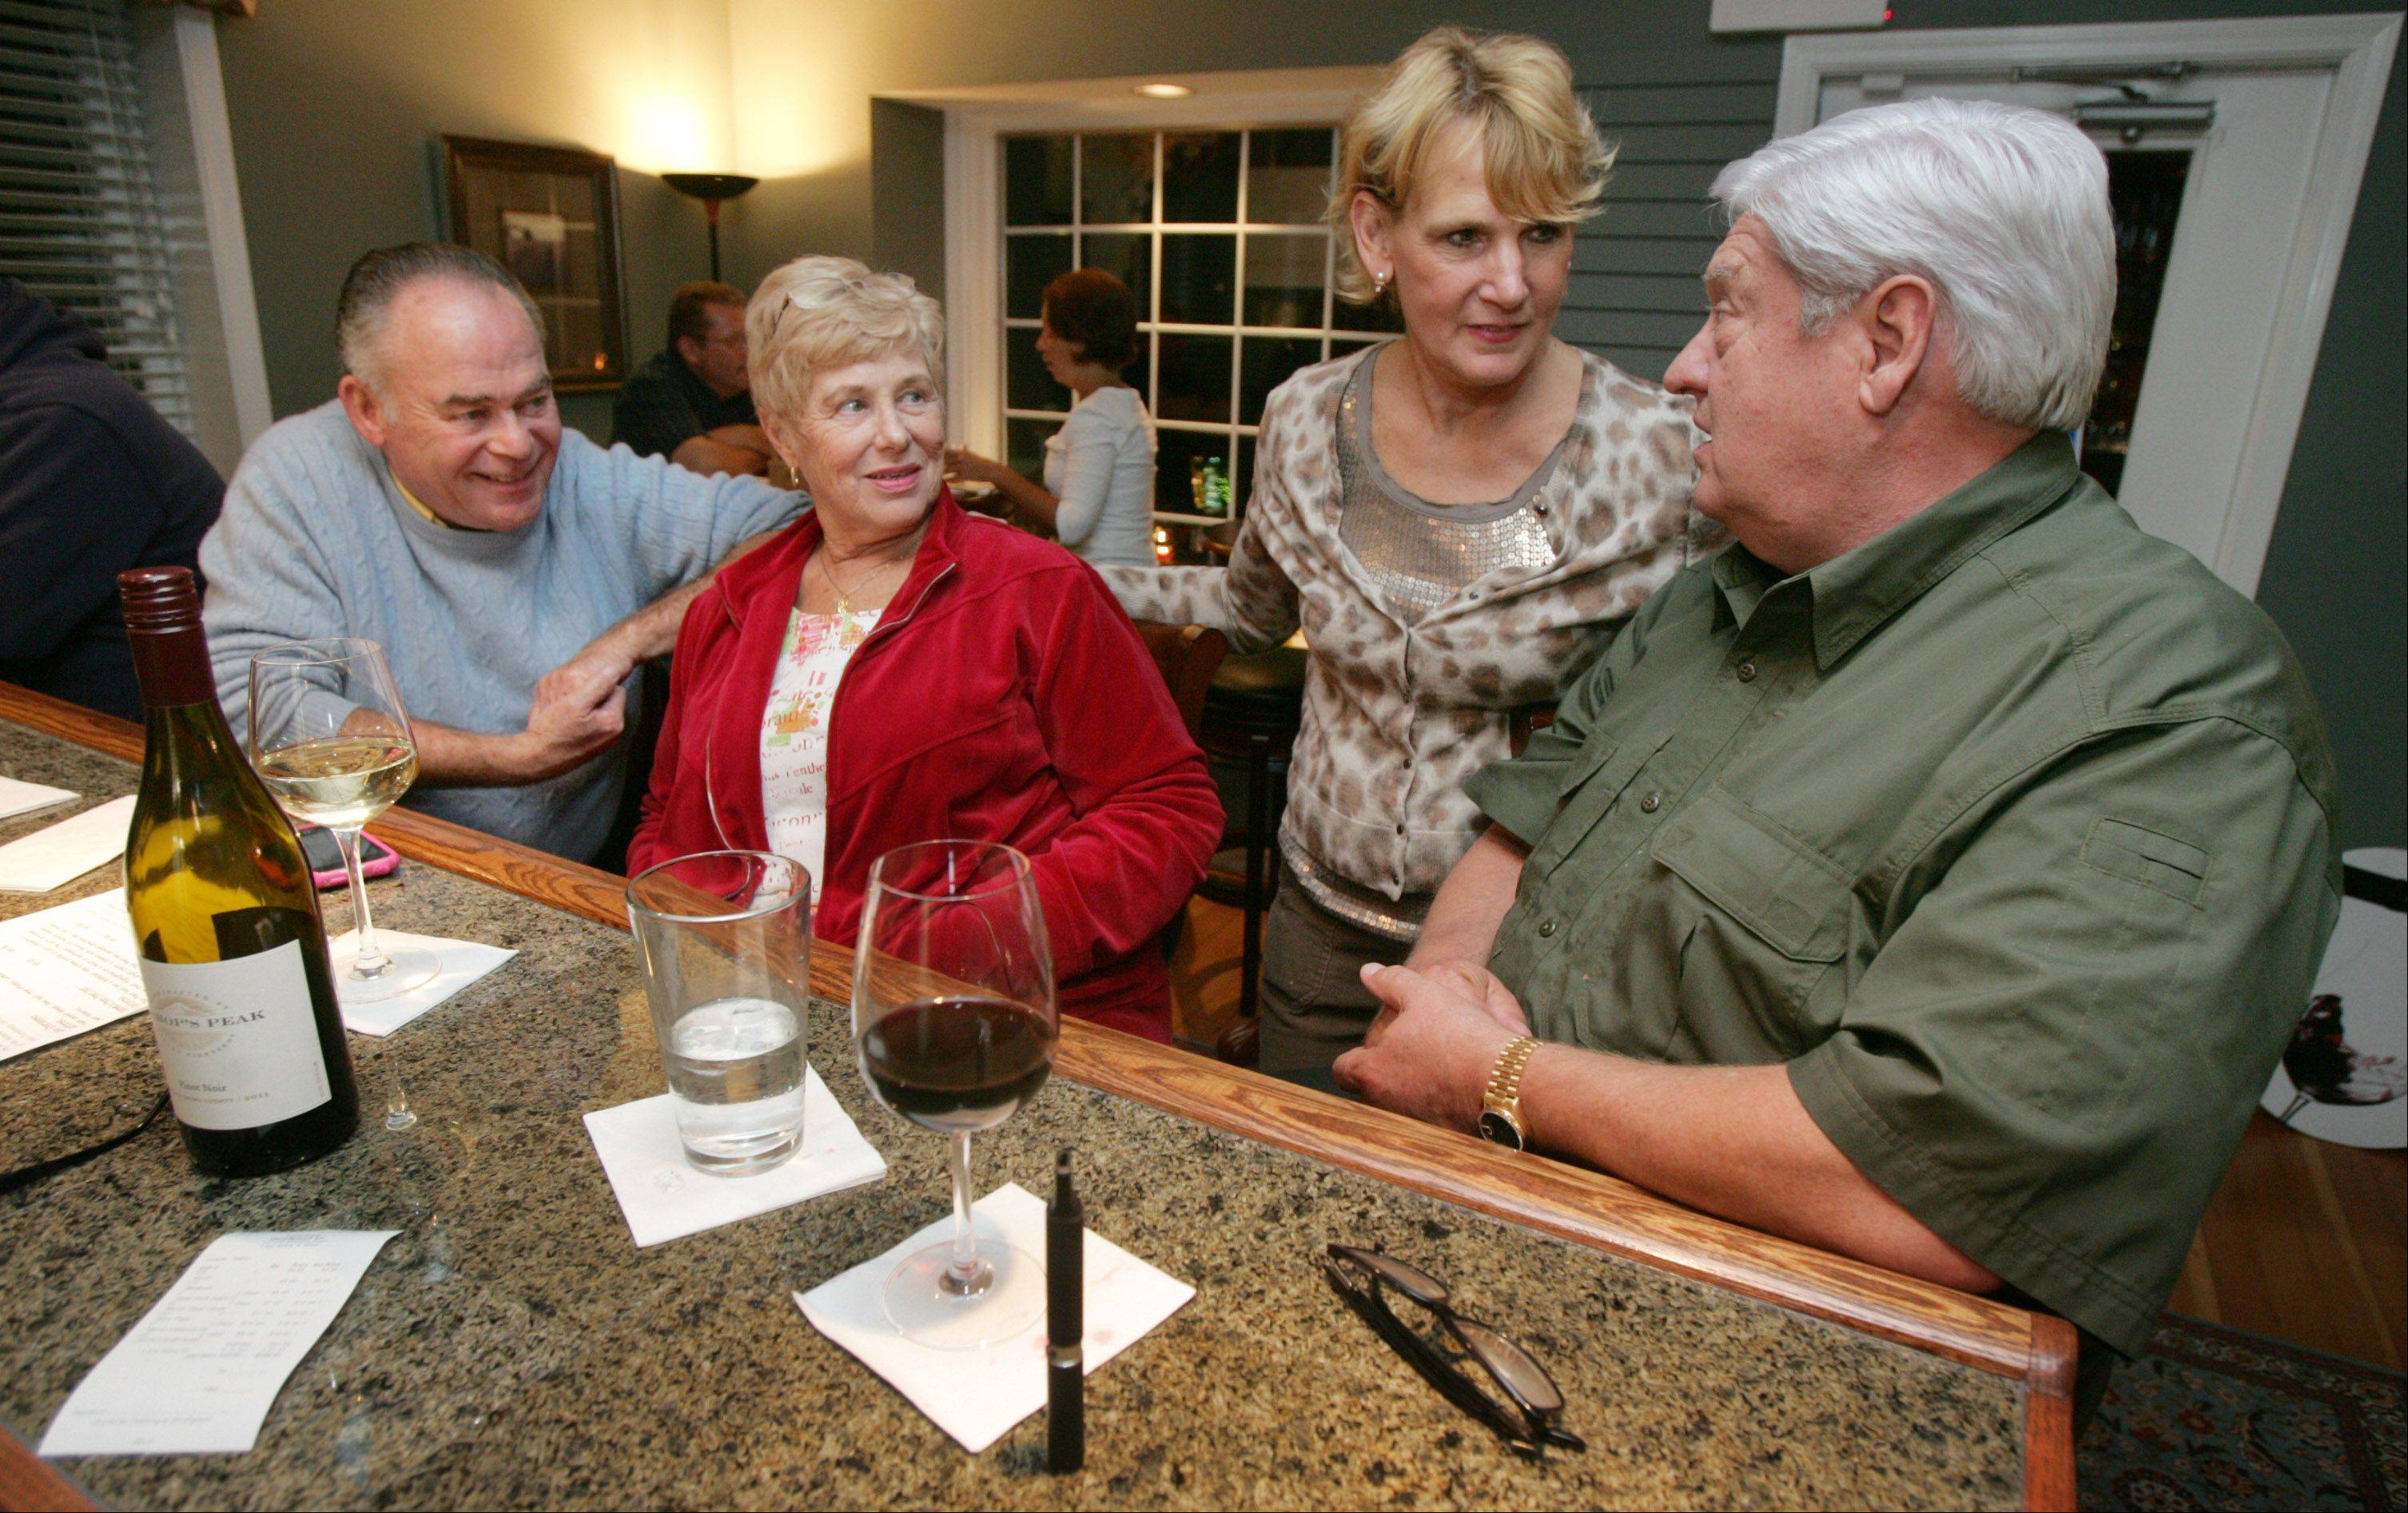 Bard Boand of North Barrington, right, talks to server Kathy Cramer while he and his friends Mary Schick and Will Askew enjoy some wine at WineSplash in Long Grove.